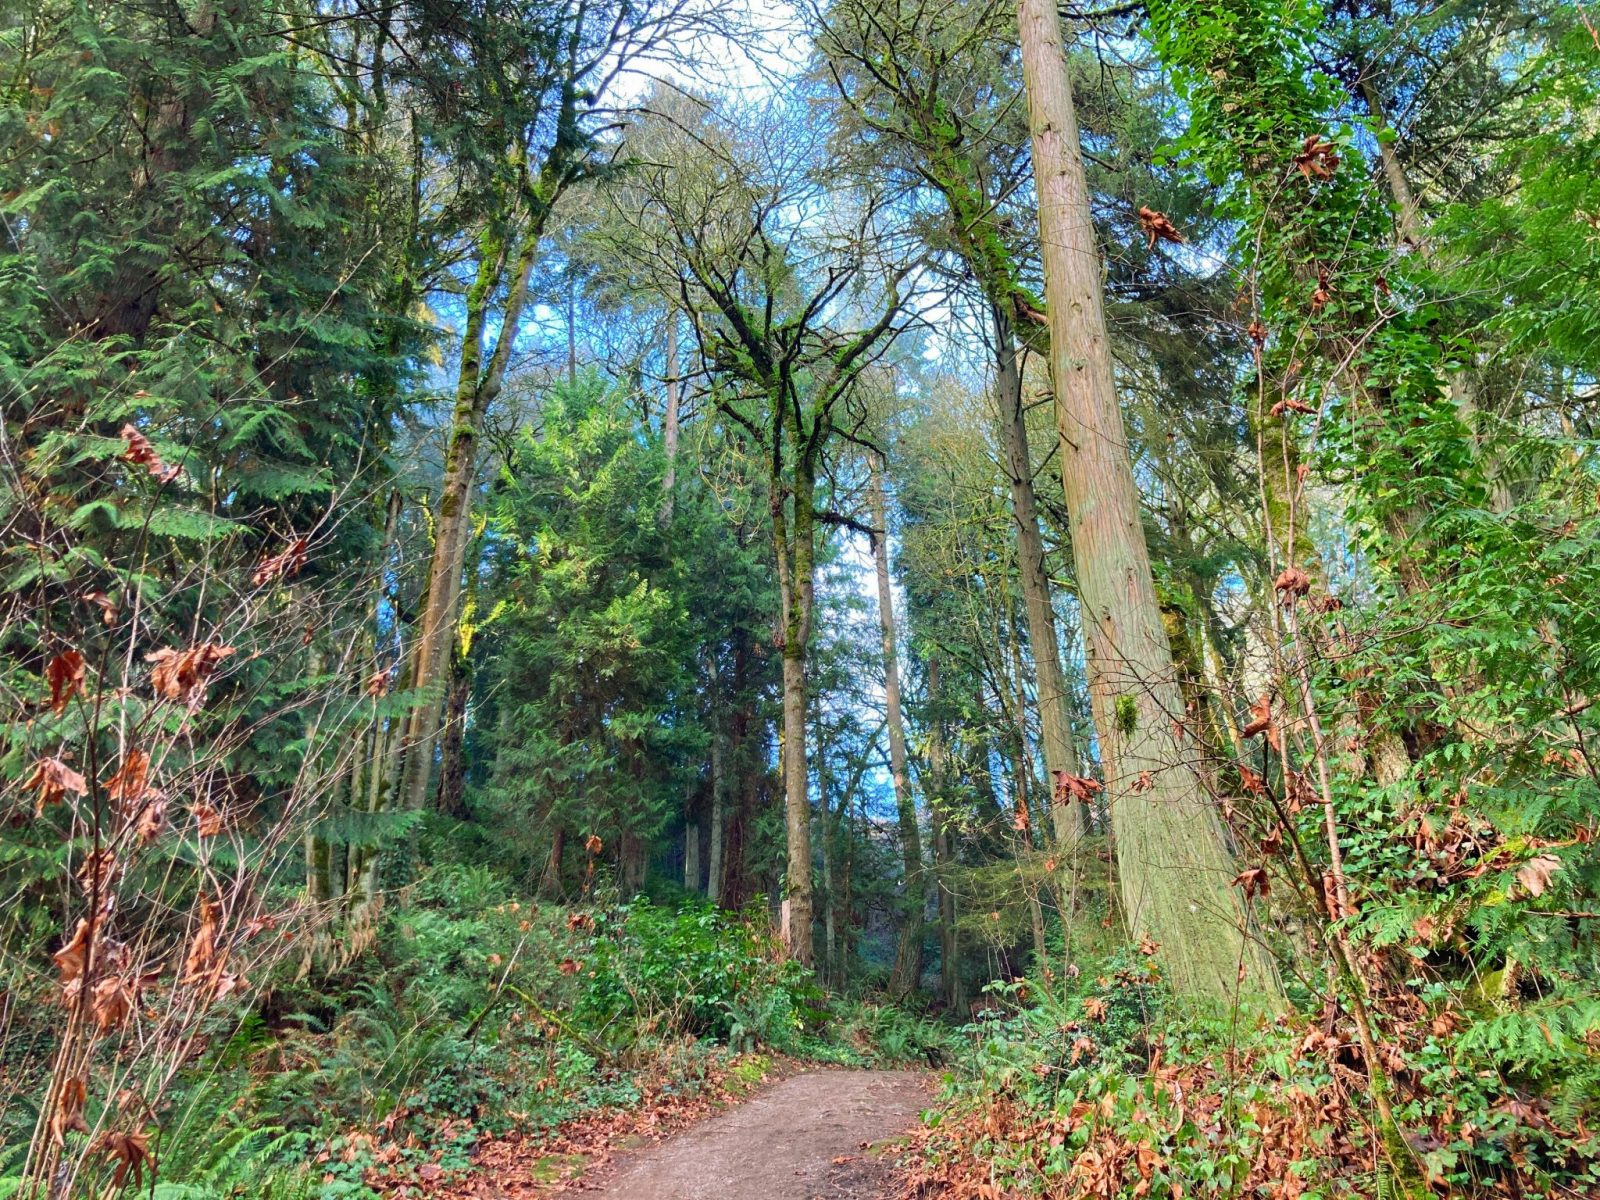 A trail through the forest with evergreen trees and green shrubs and undergrowth in Weowna Park, home to one of the excellent hikes in Bellevue